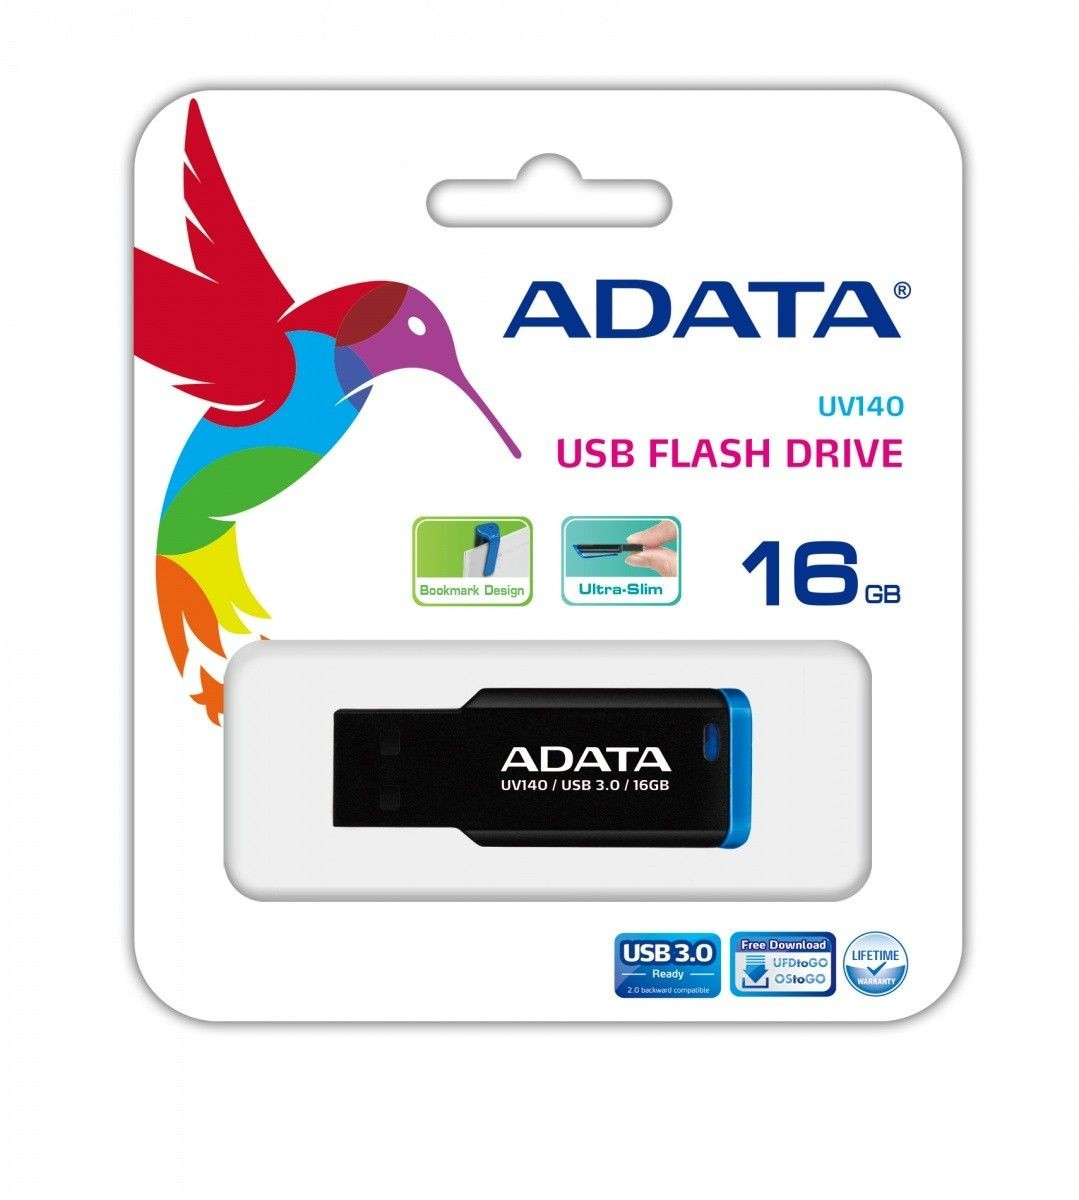 A-Data Adata Flash Drive UV140, 16GB, USB 3.0, black and blue